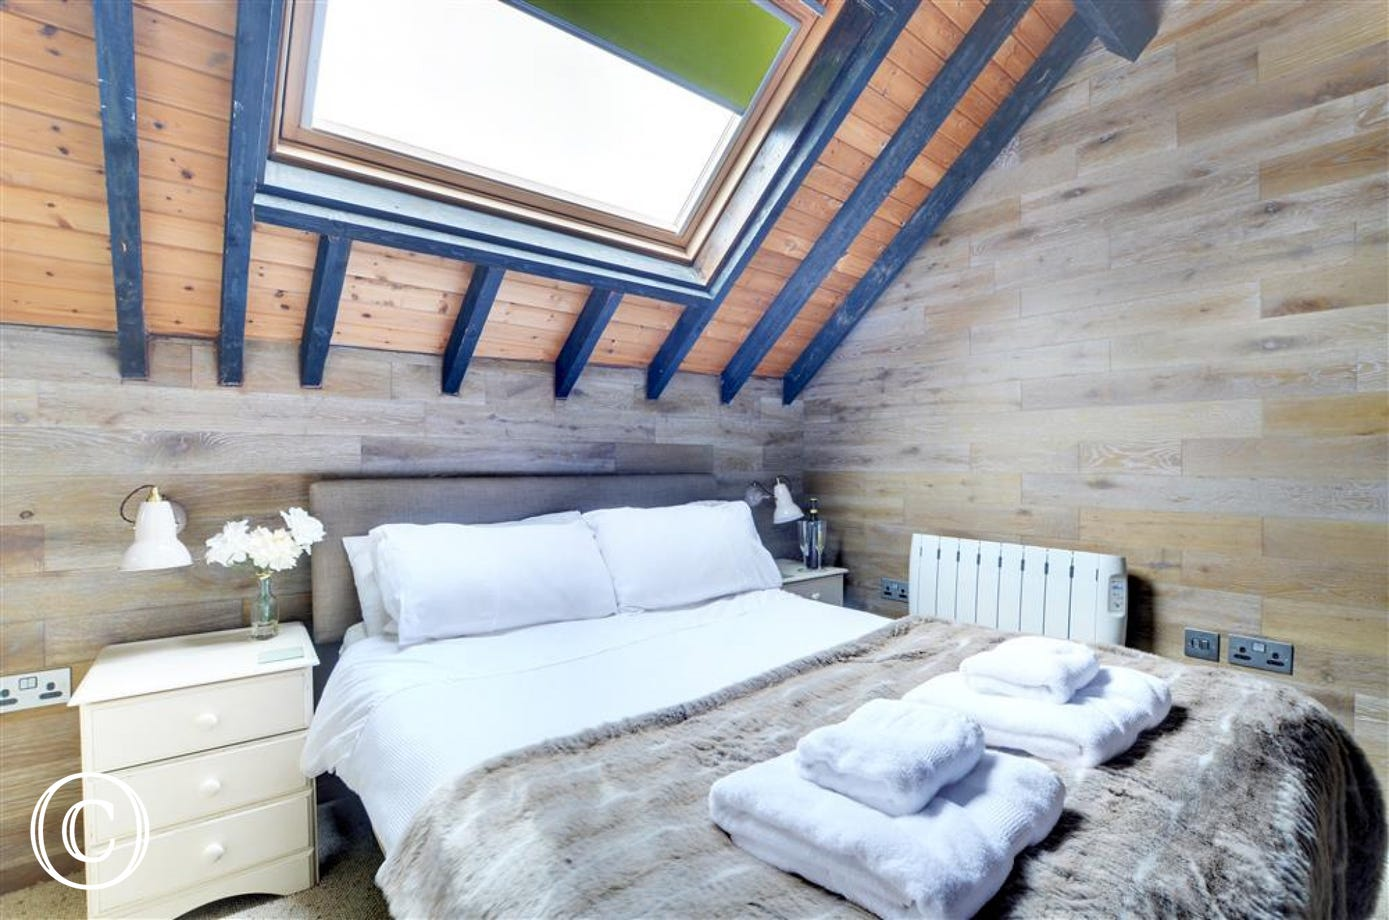 A unique double bedroom in the minstrels gallery with a high vaulted ceiling and overlooking the sitting room below.